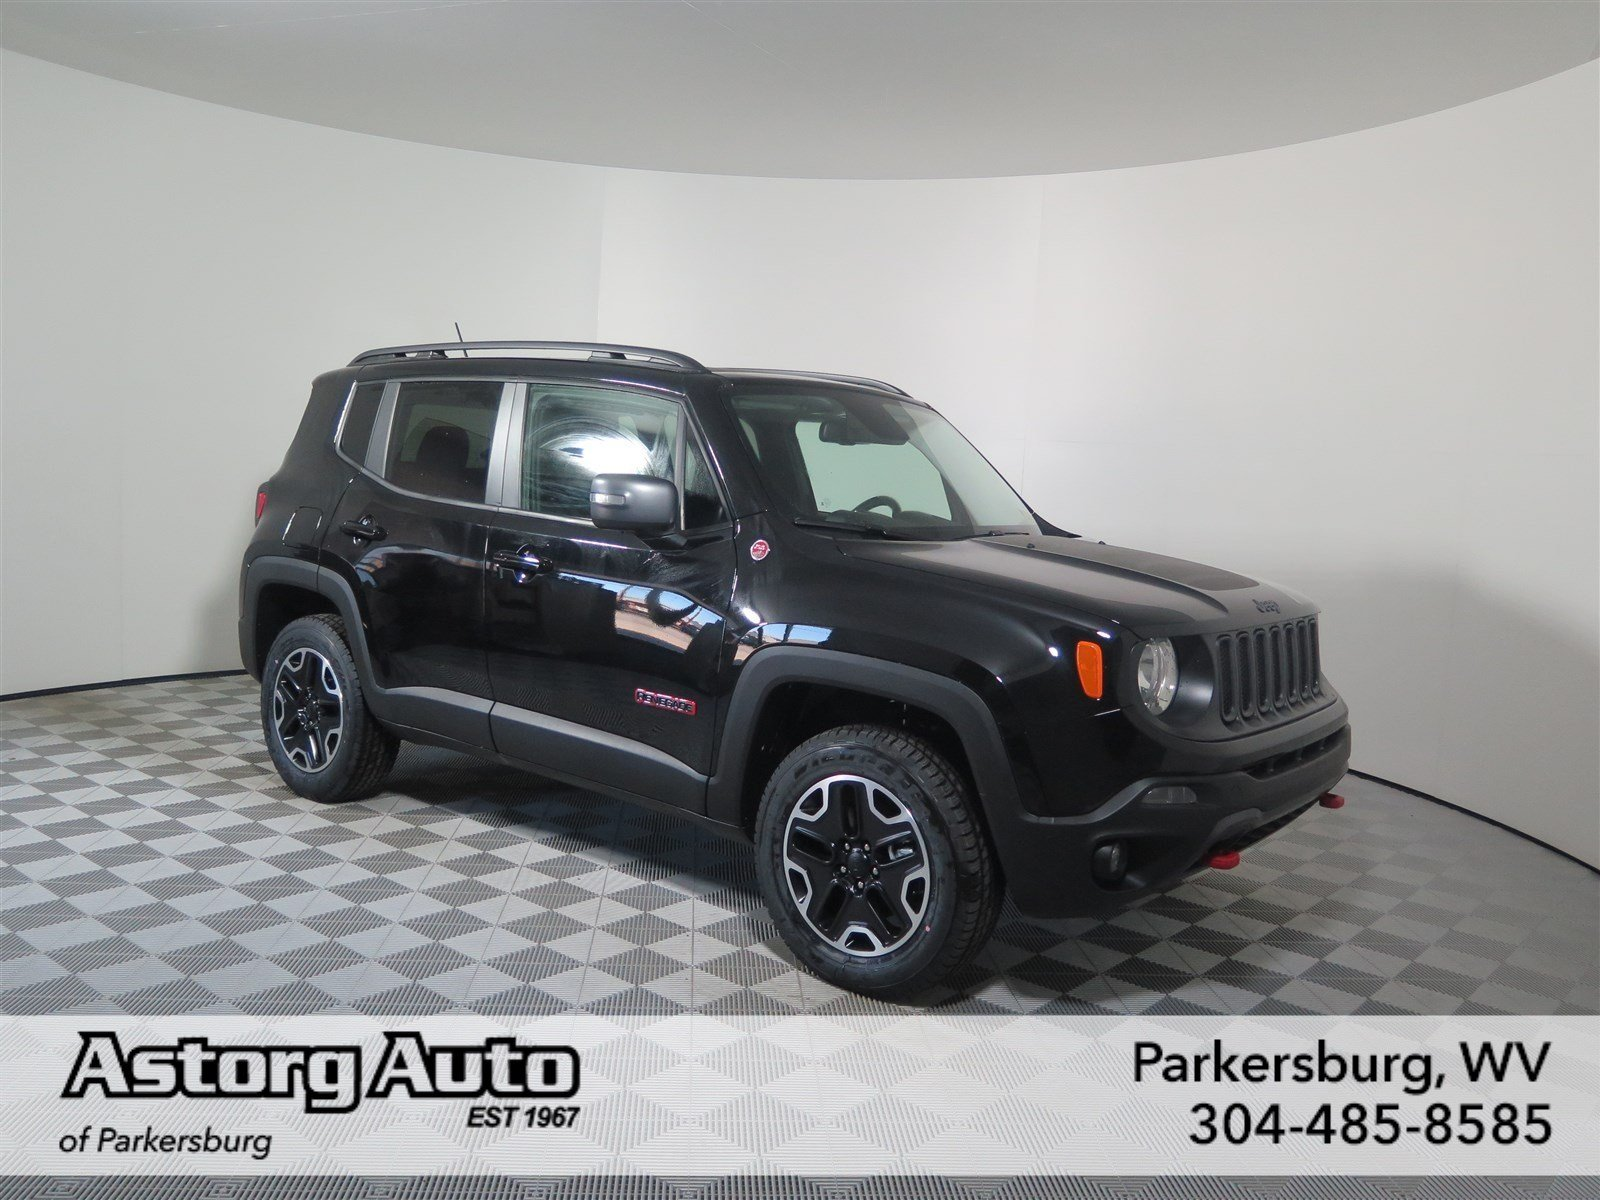 new 2017 jeep renegade trailhawk sport utility in parkersburg d6171 astorg auto. Black Bedroom Furniture Sets. Home Design Ideas